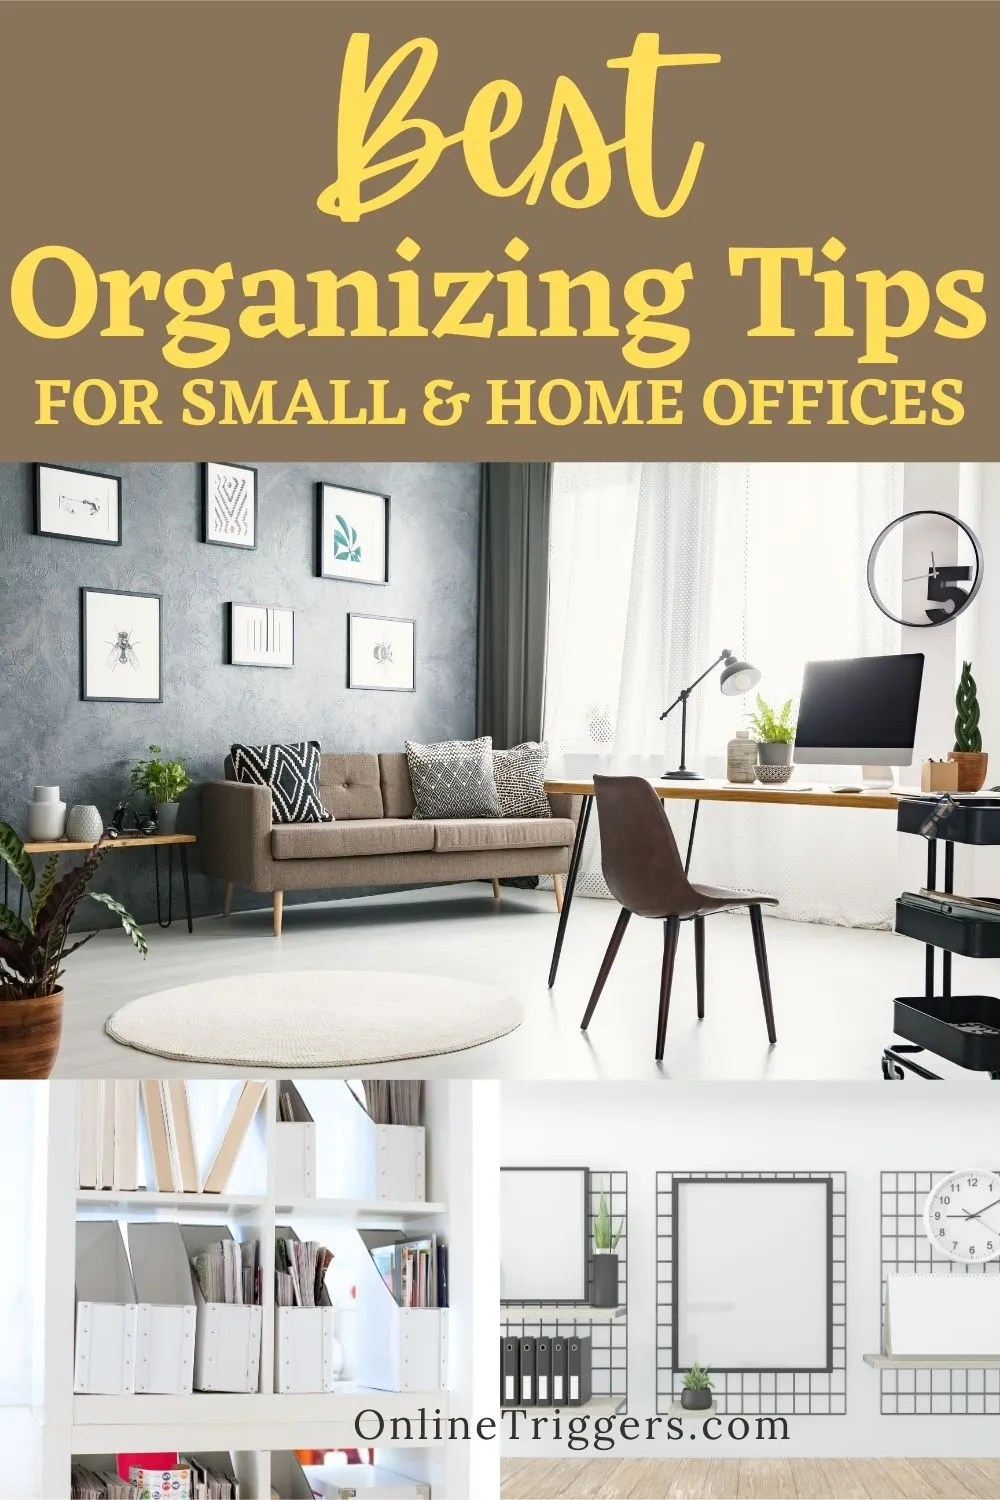 best organizing tips for small home offices (1)